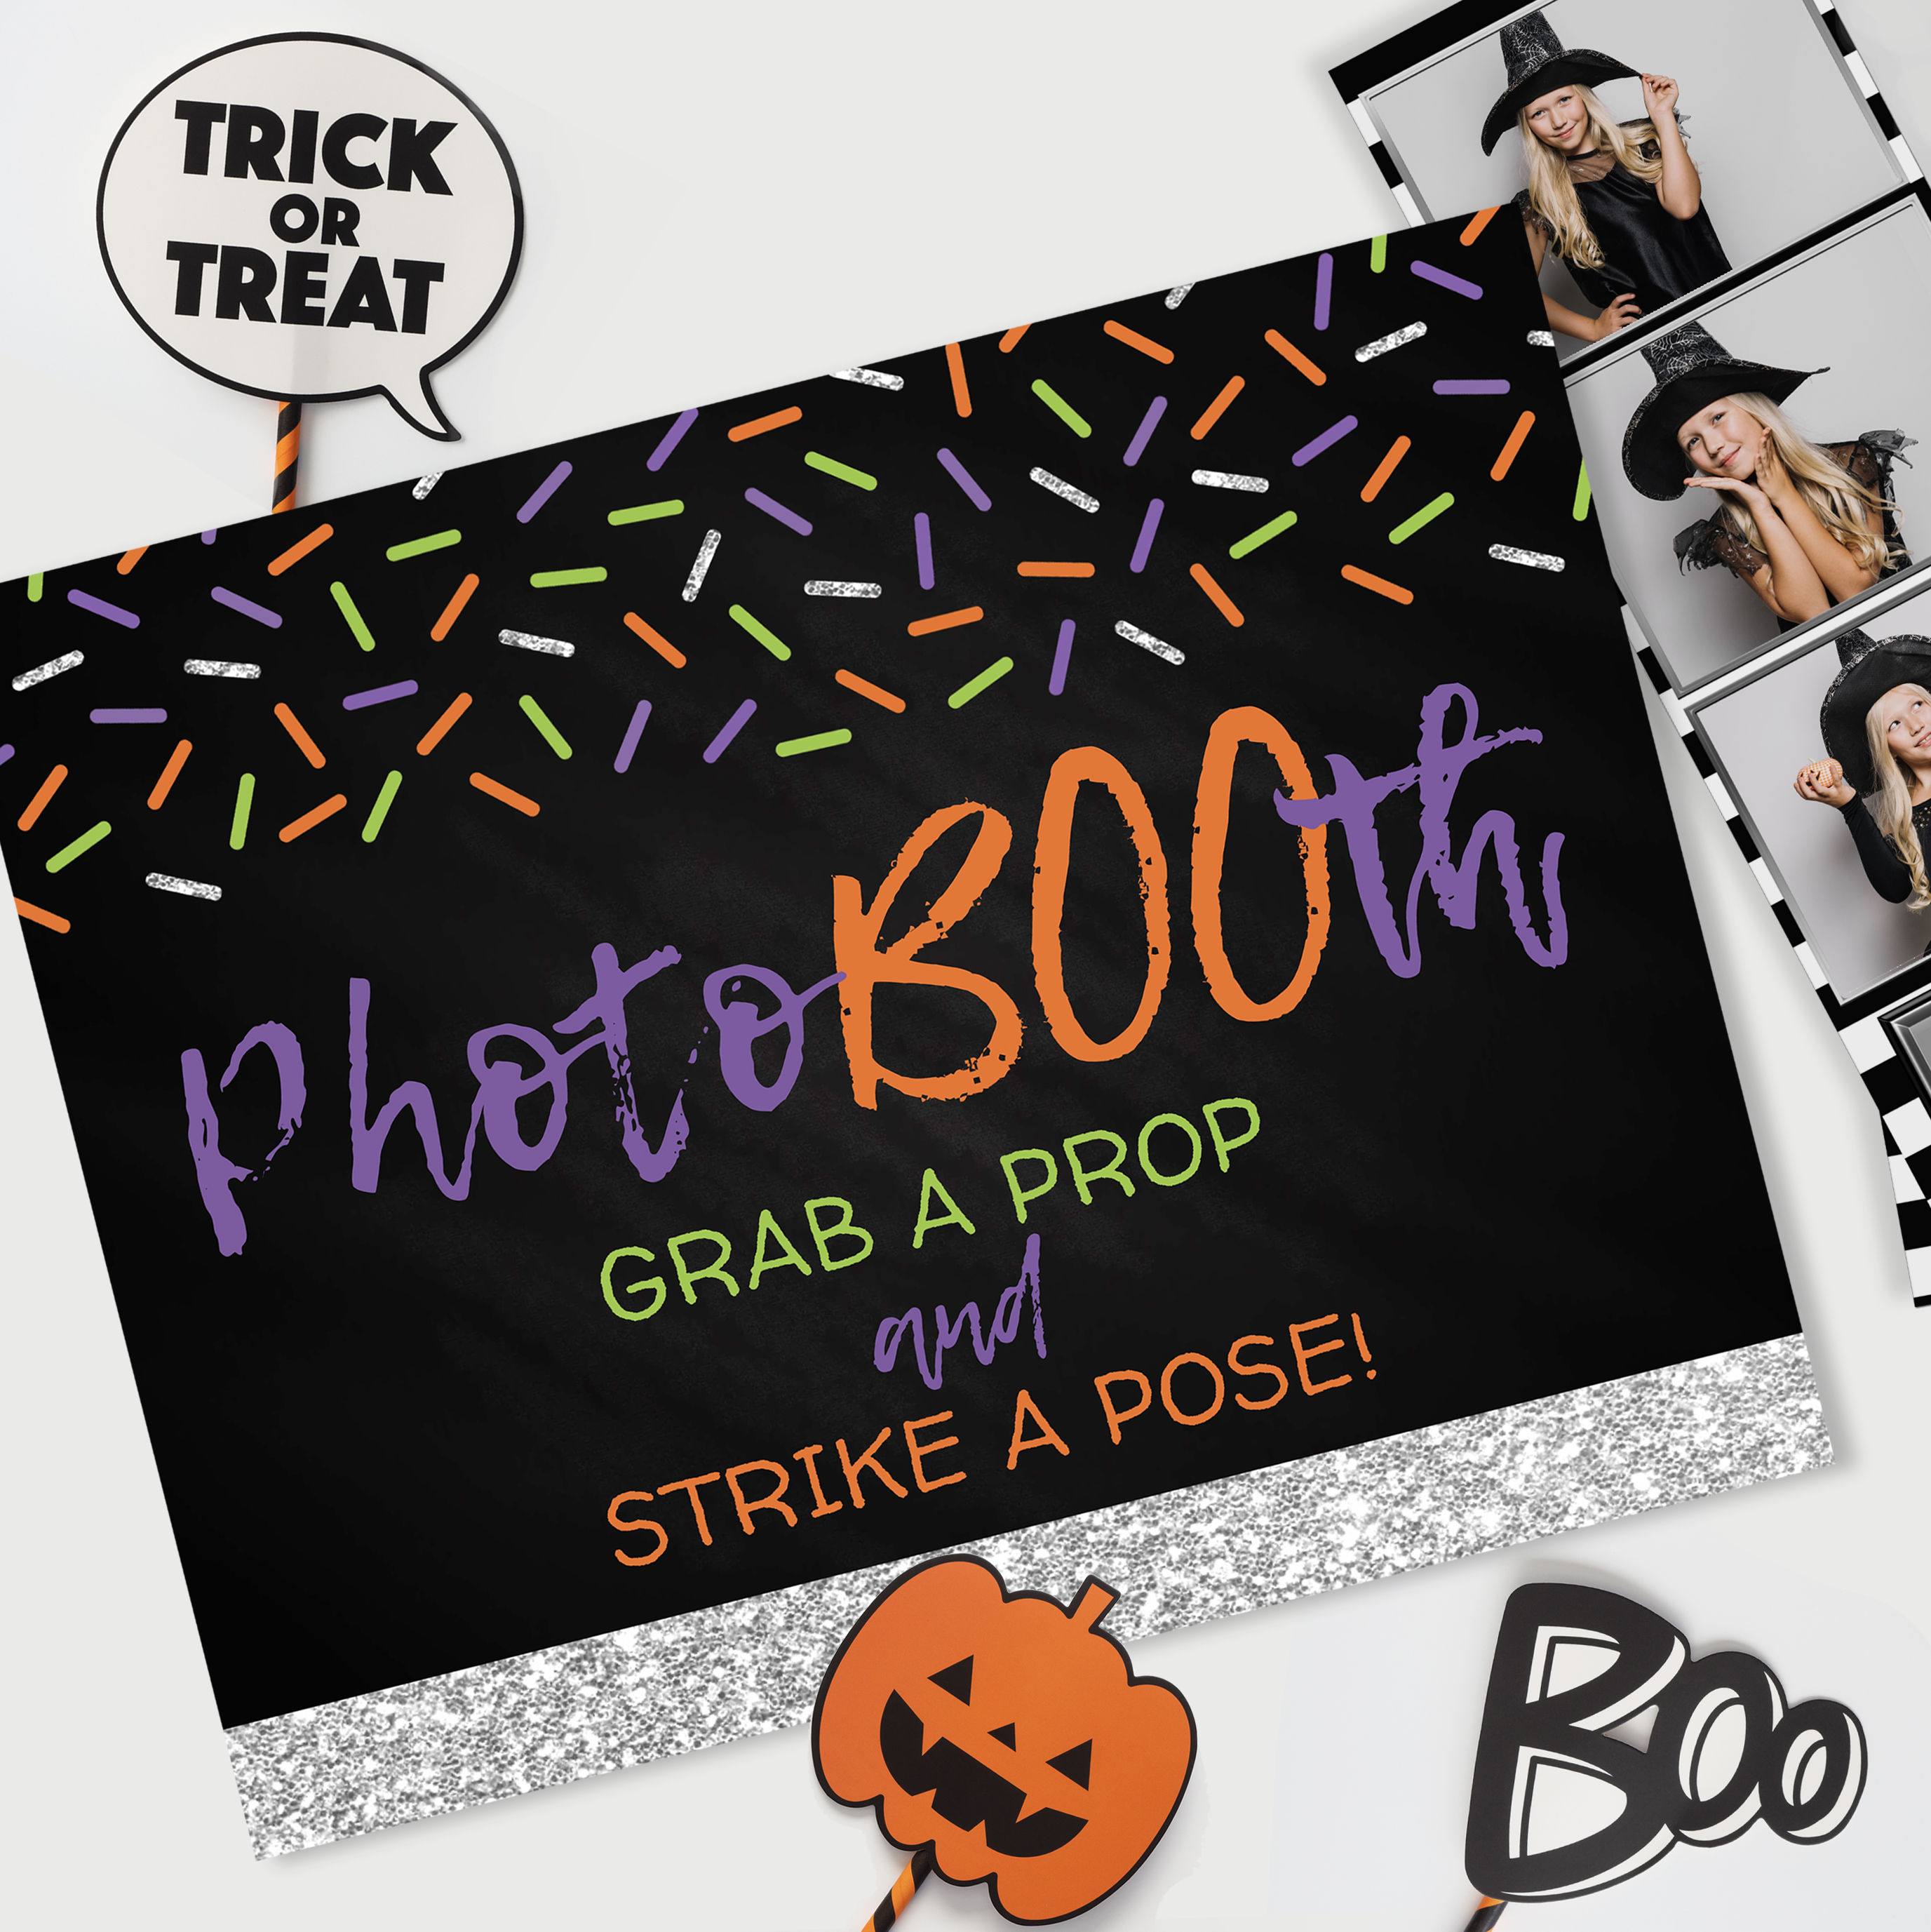 FREE HALLOWEEN PARTY PHOTO BOO-TH PRINTABLE SIGN INSTANT DOWNLOAD HALLOWEEN COSTUME PARTY PHOTO PROP Enjoy this 8x10